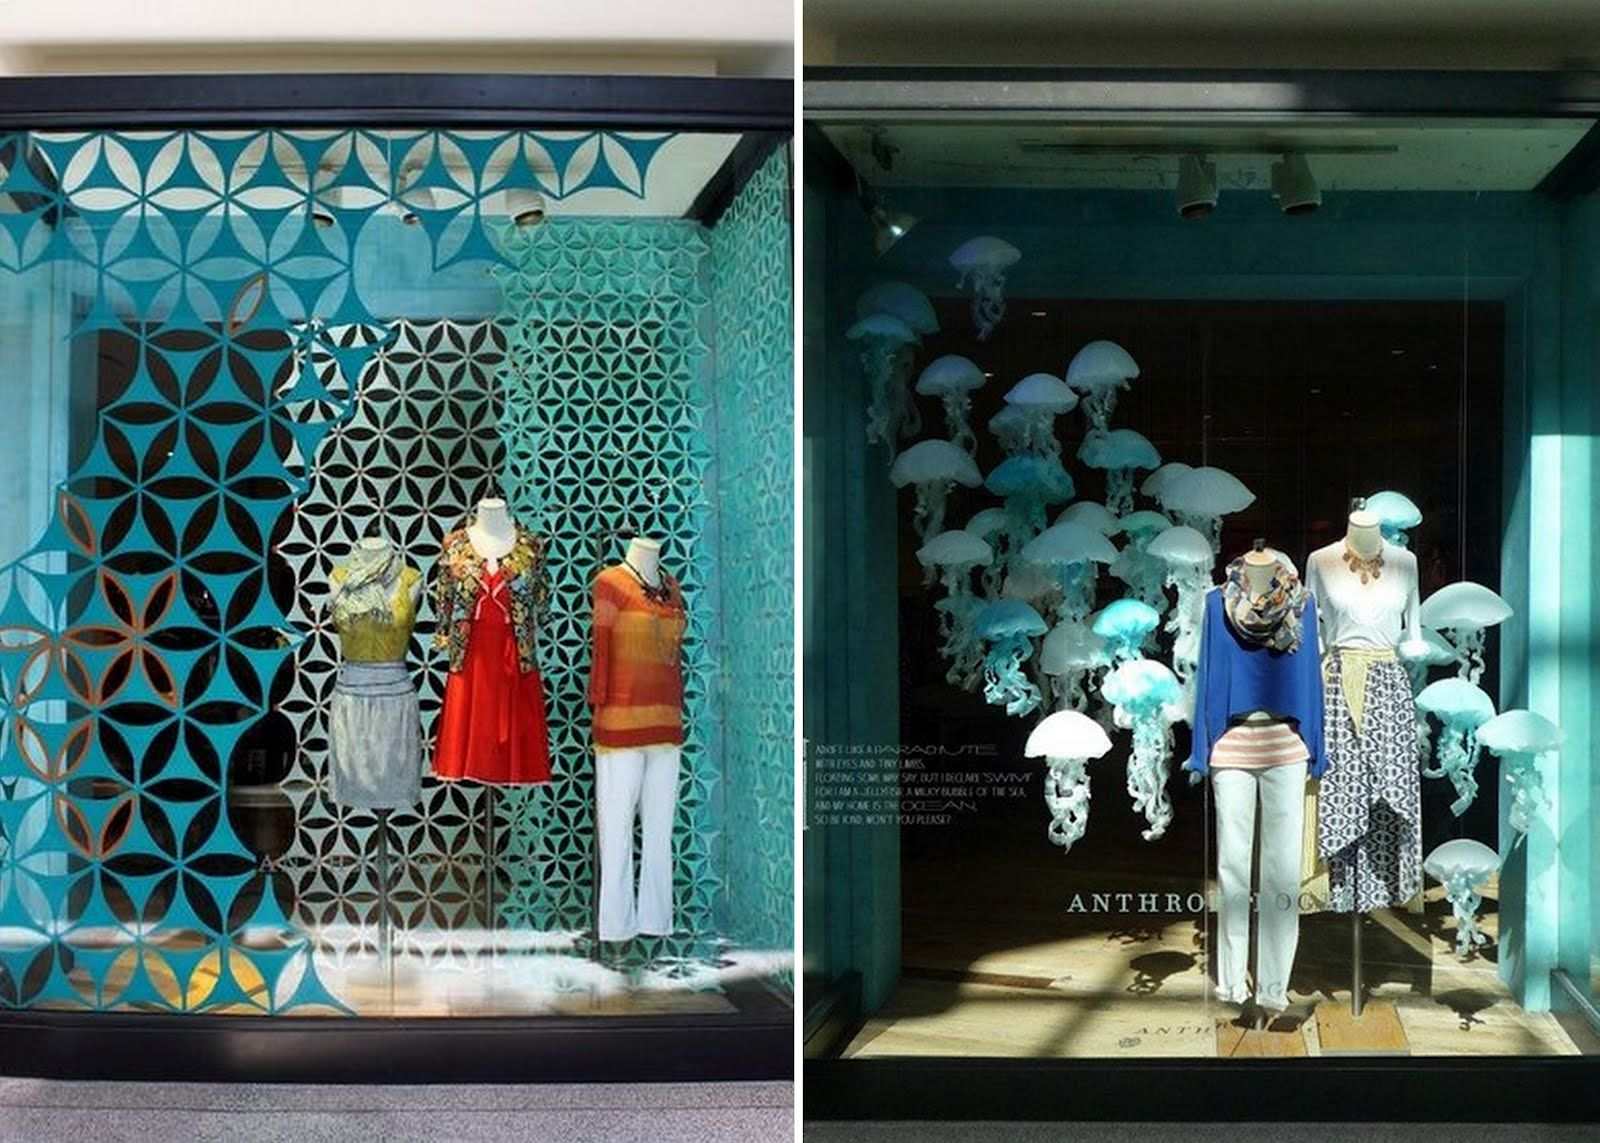 Pure joy events anthropologie summer window displays for Anthropologie store decoration ideas